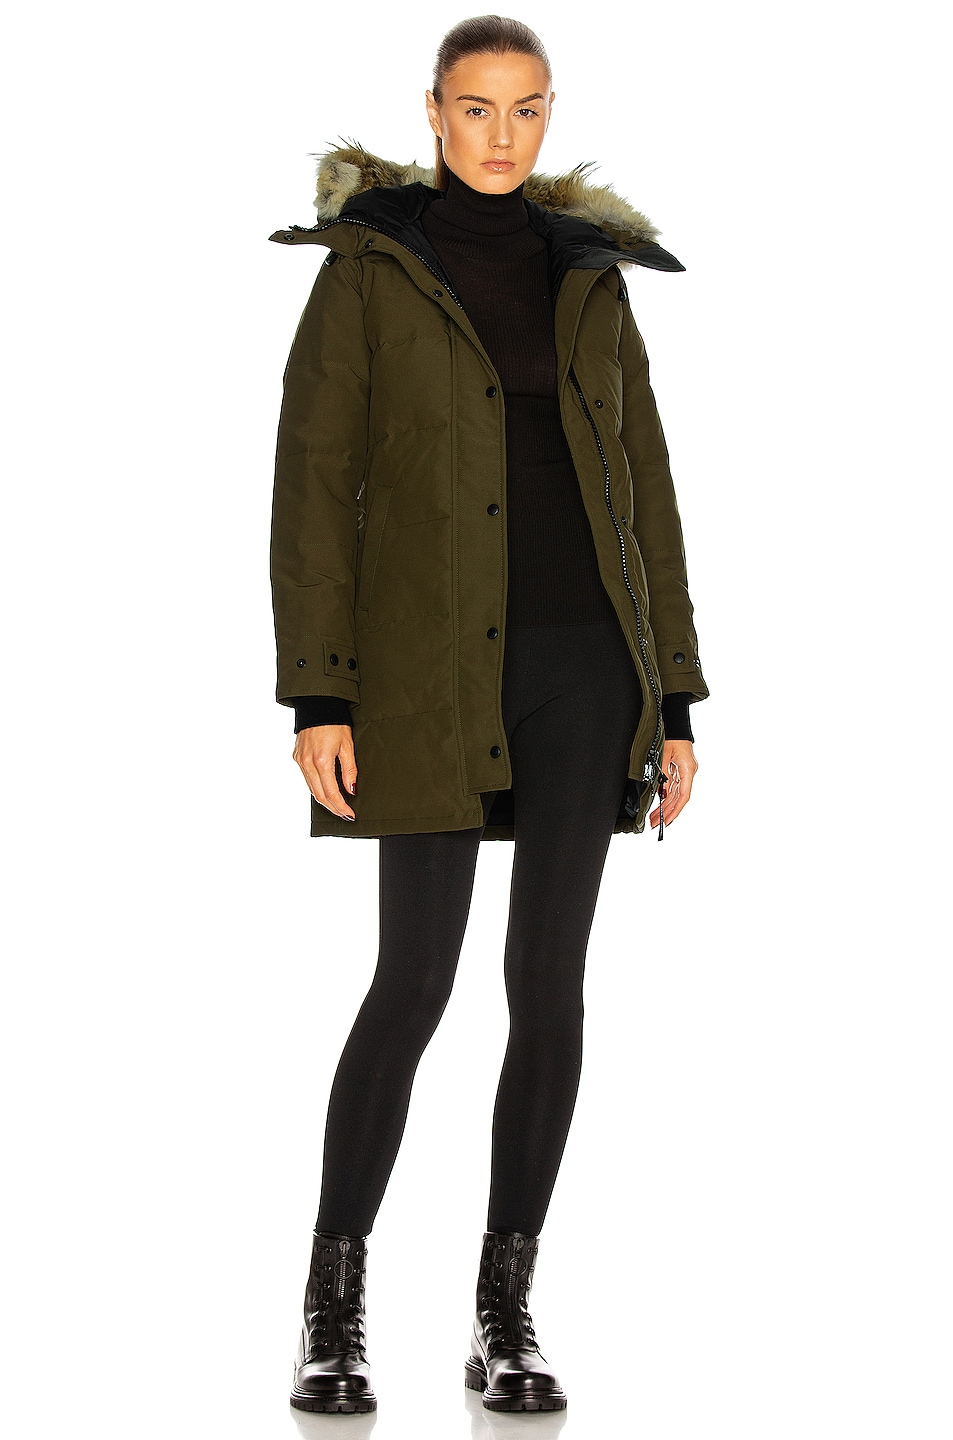 Canada Goose trillium parka outlet shop - Canada Goose Shelburne Parka with Coyote Fur in Military Green | FWRD